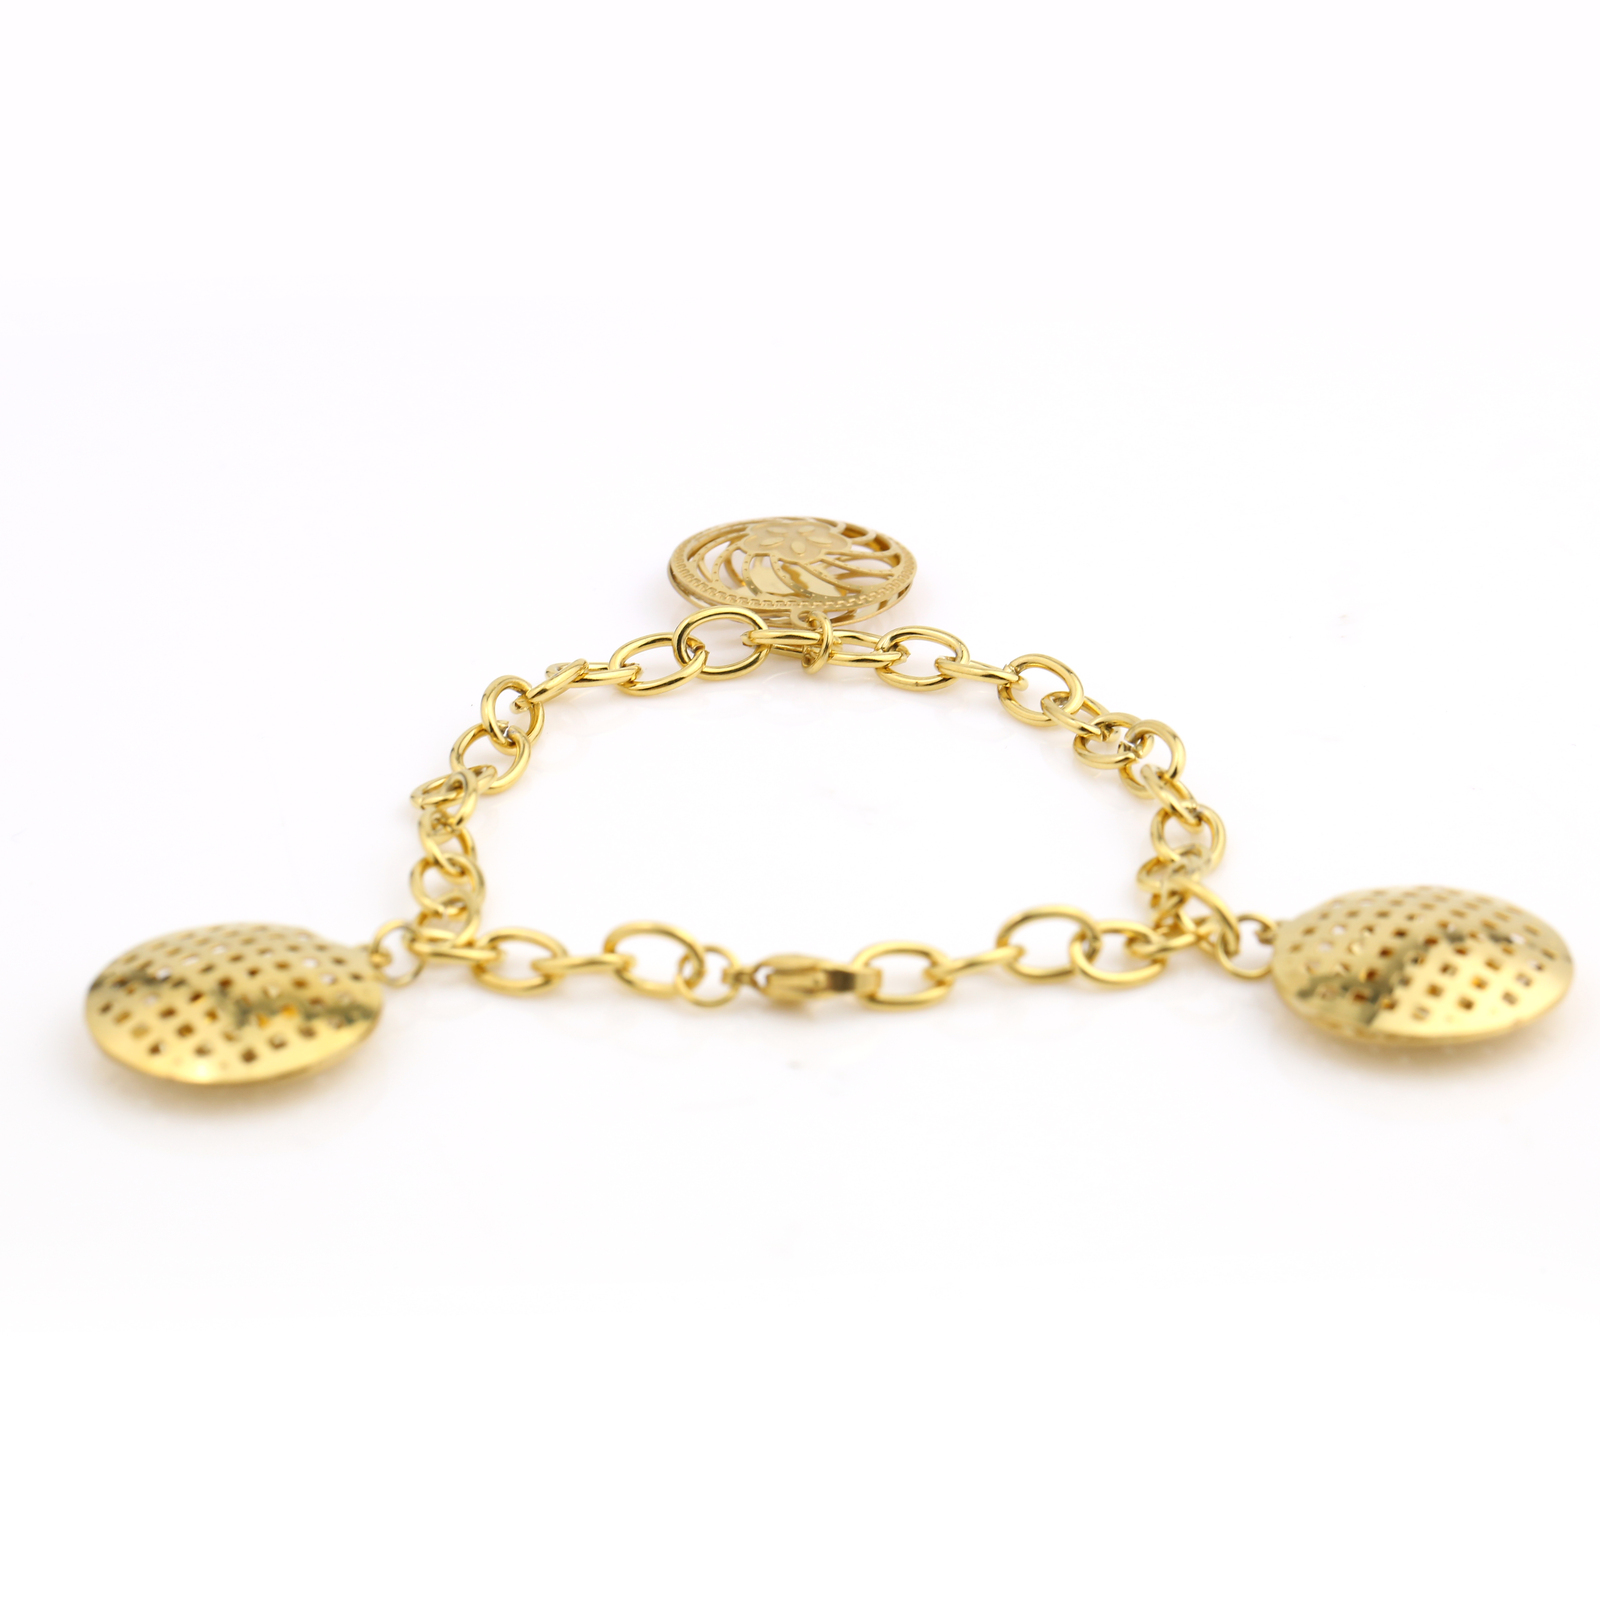 UNITED ELEGANCE Stylish Gold Tone Bracelet With Open Cut Out Designed Charms